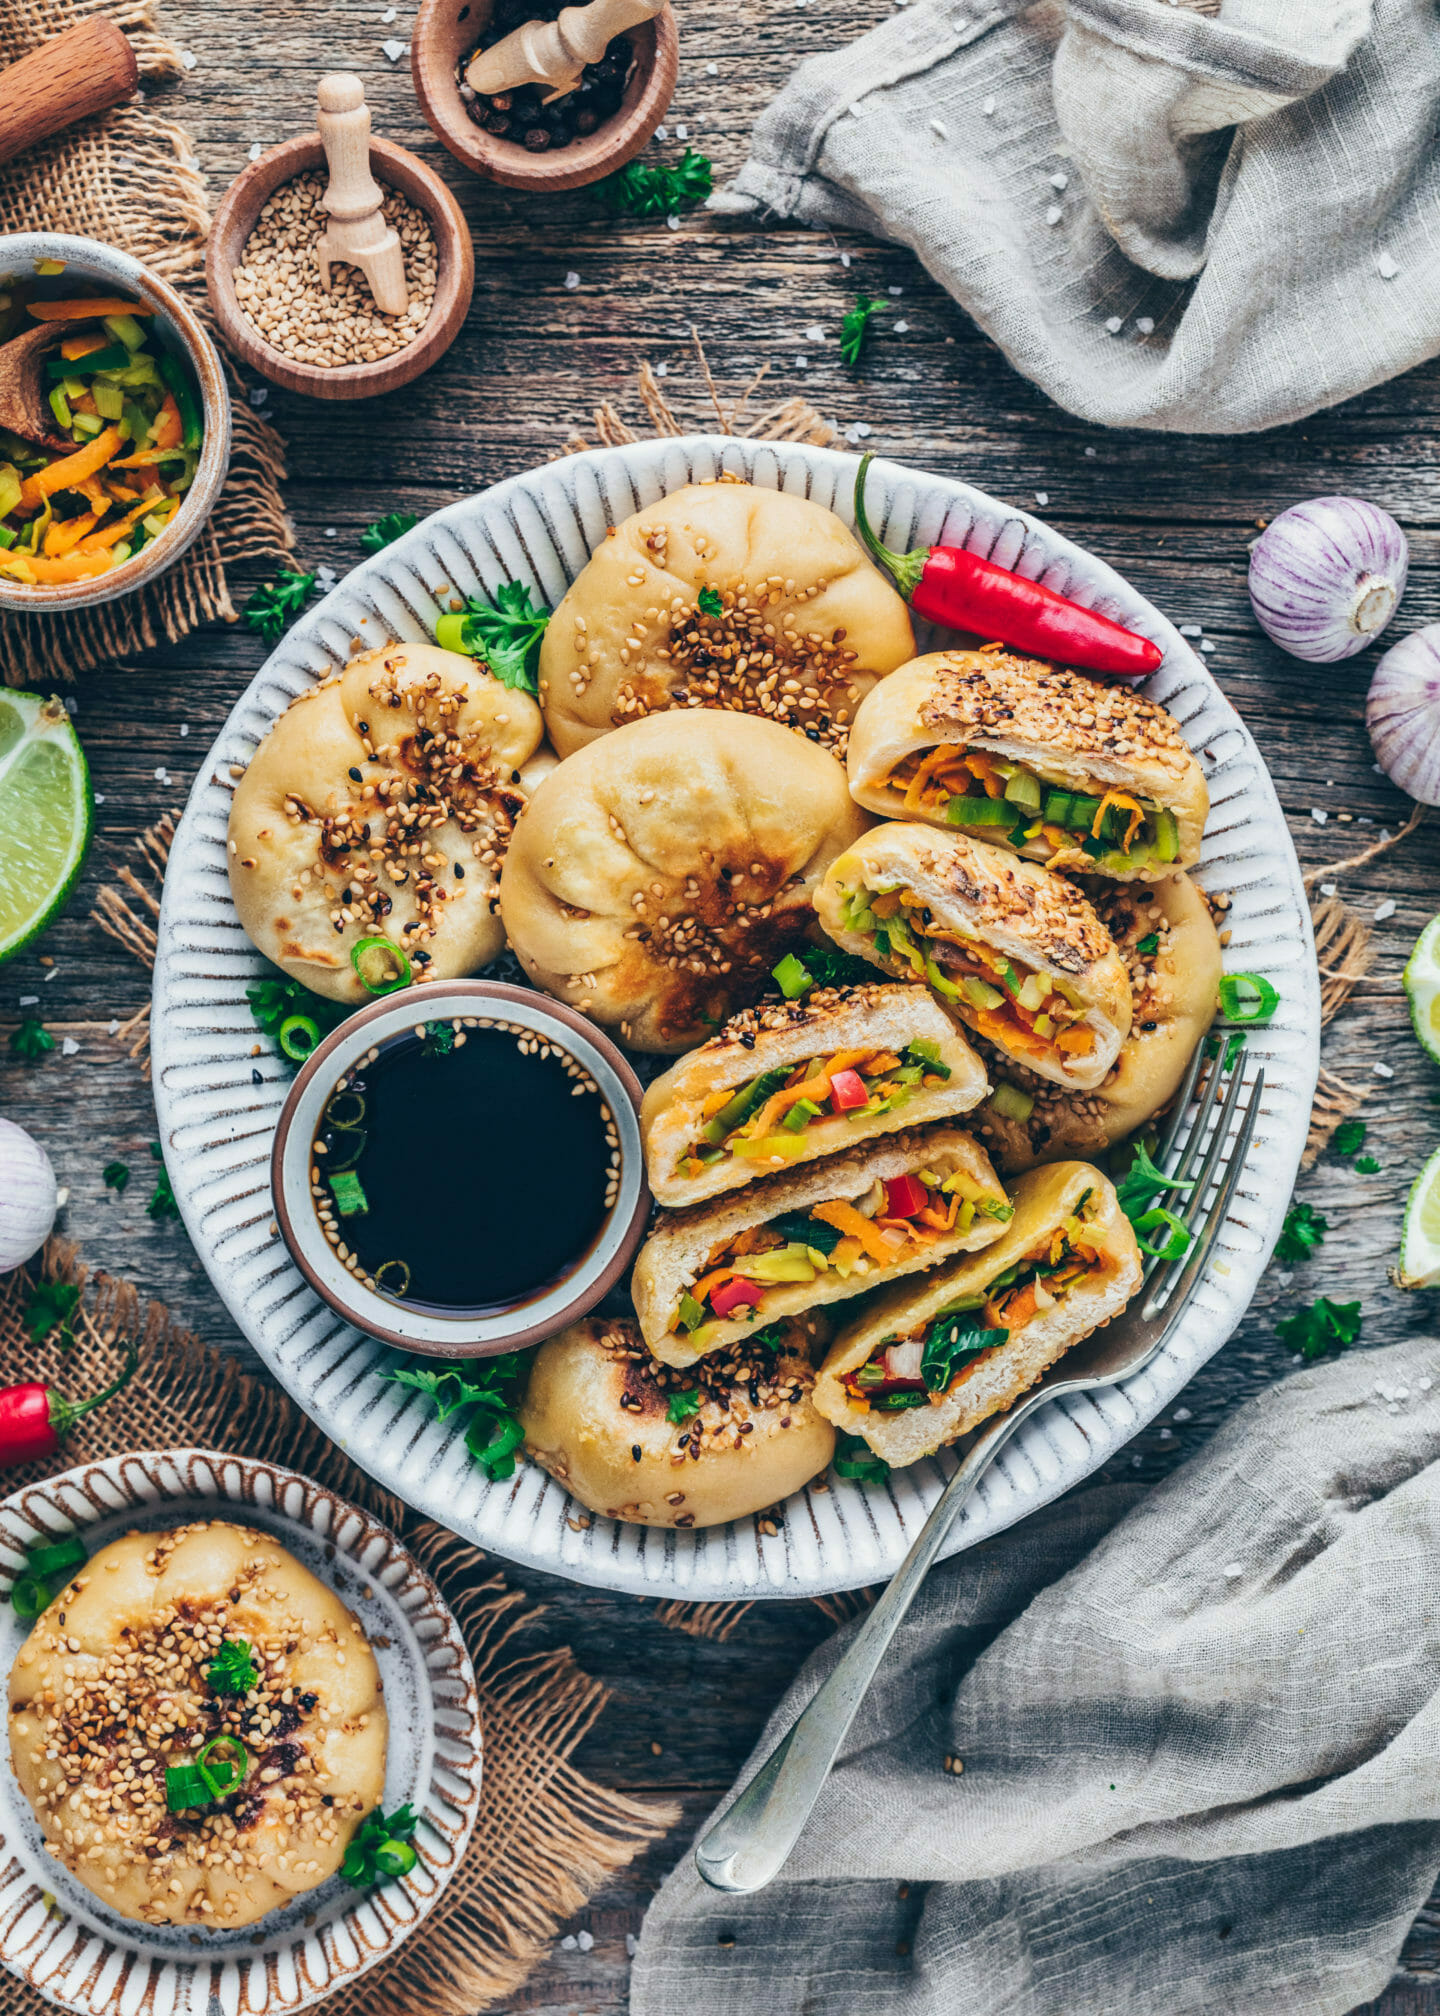 Pan-fried Steamed Bao Buns stuffed with vegetables